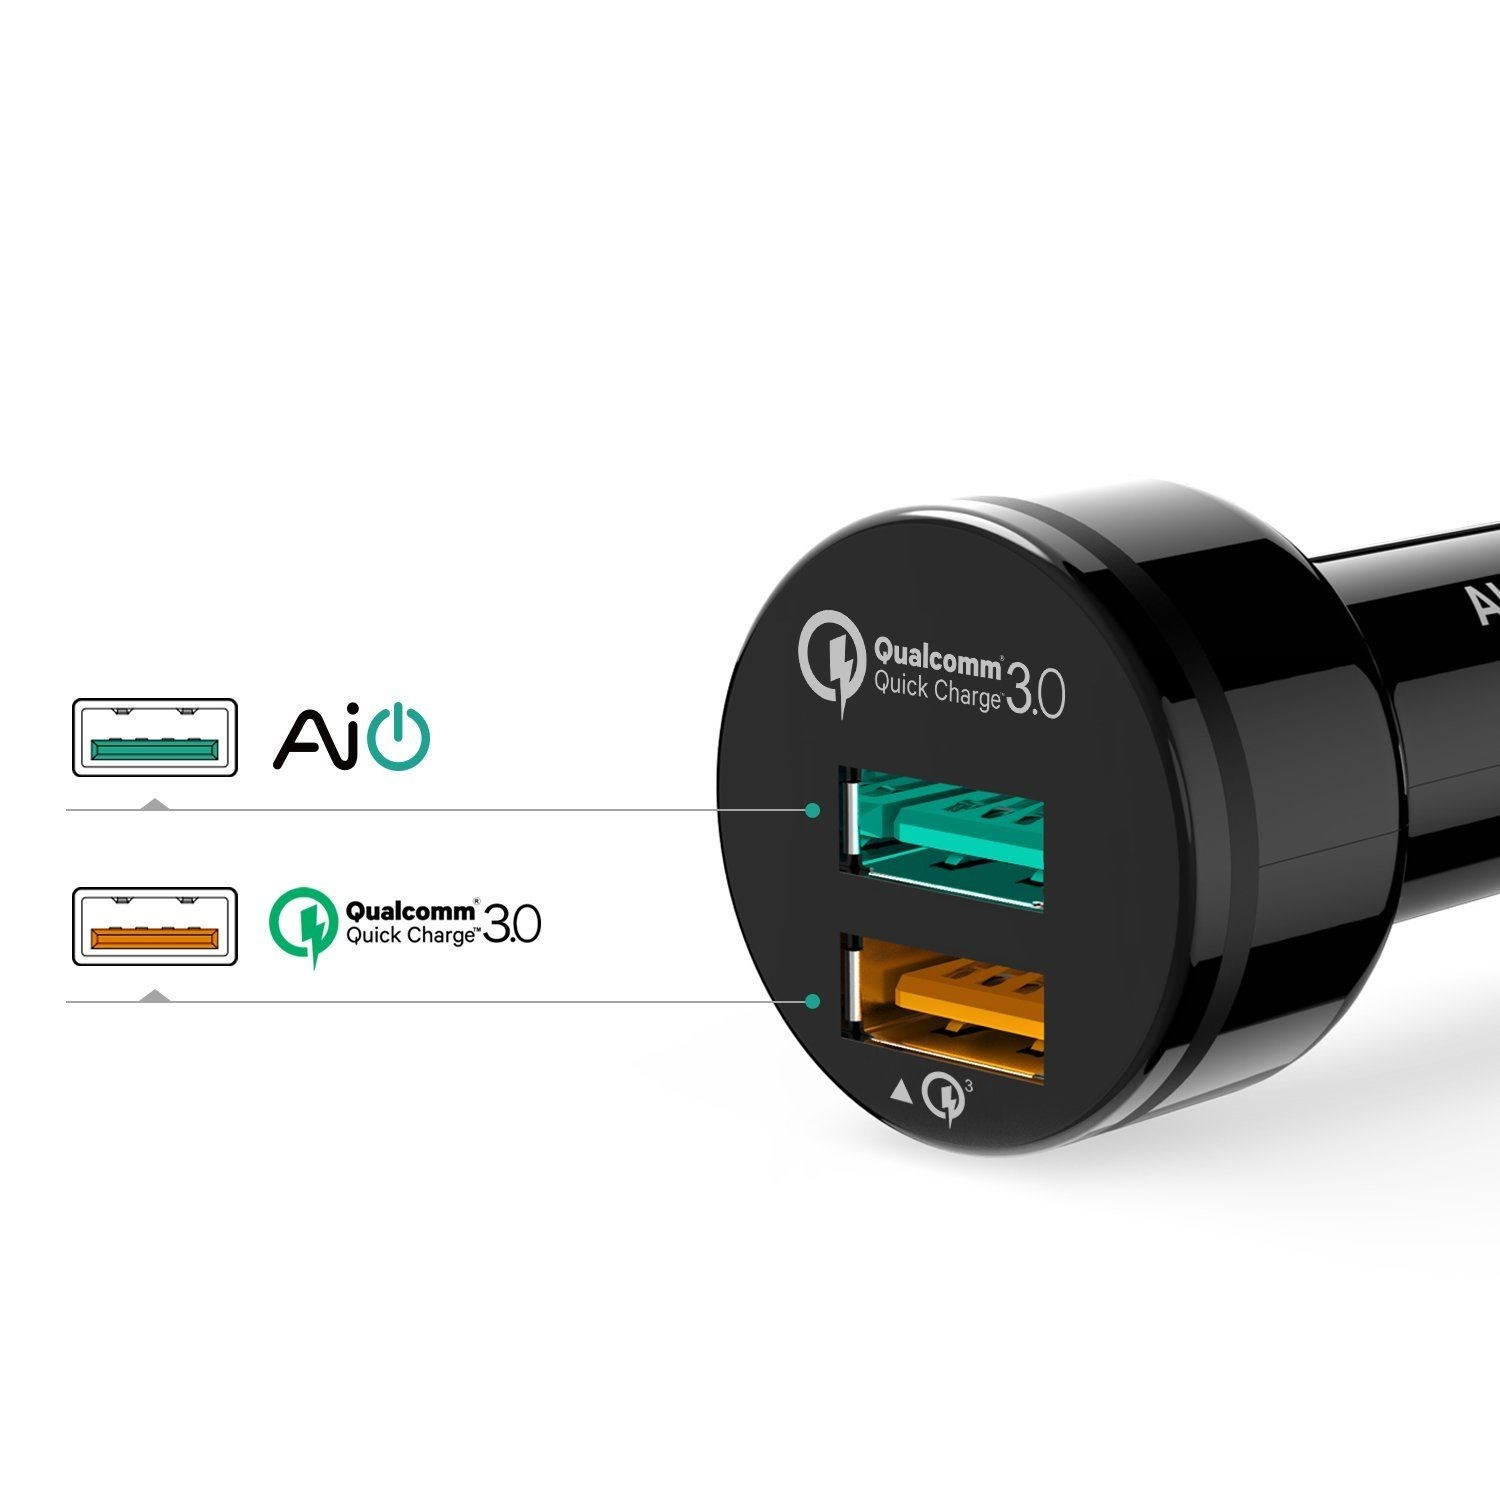 Sạc oto Aukey CC-T7 2 cổng 1x Quick Charge 3.0, 1x AiPower